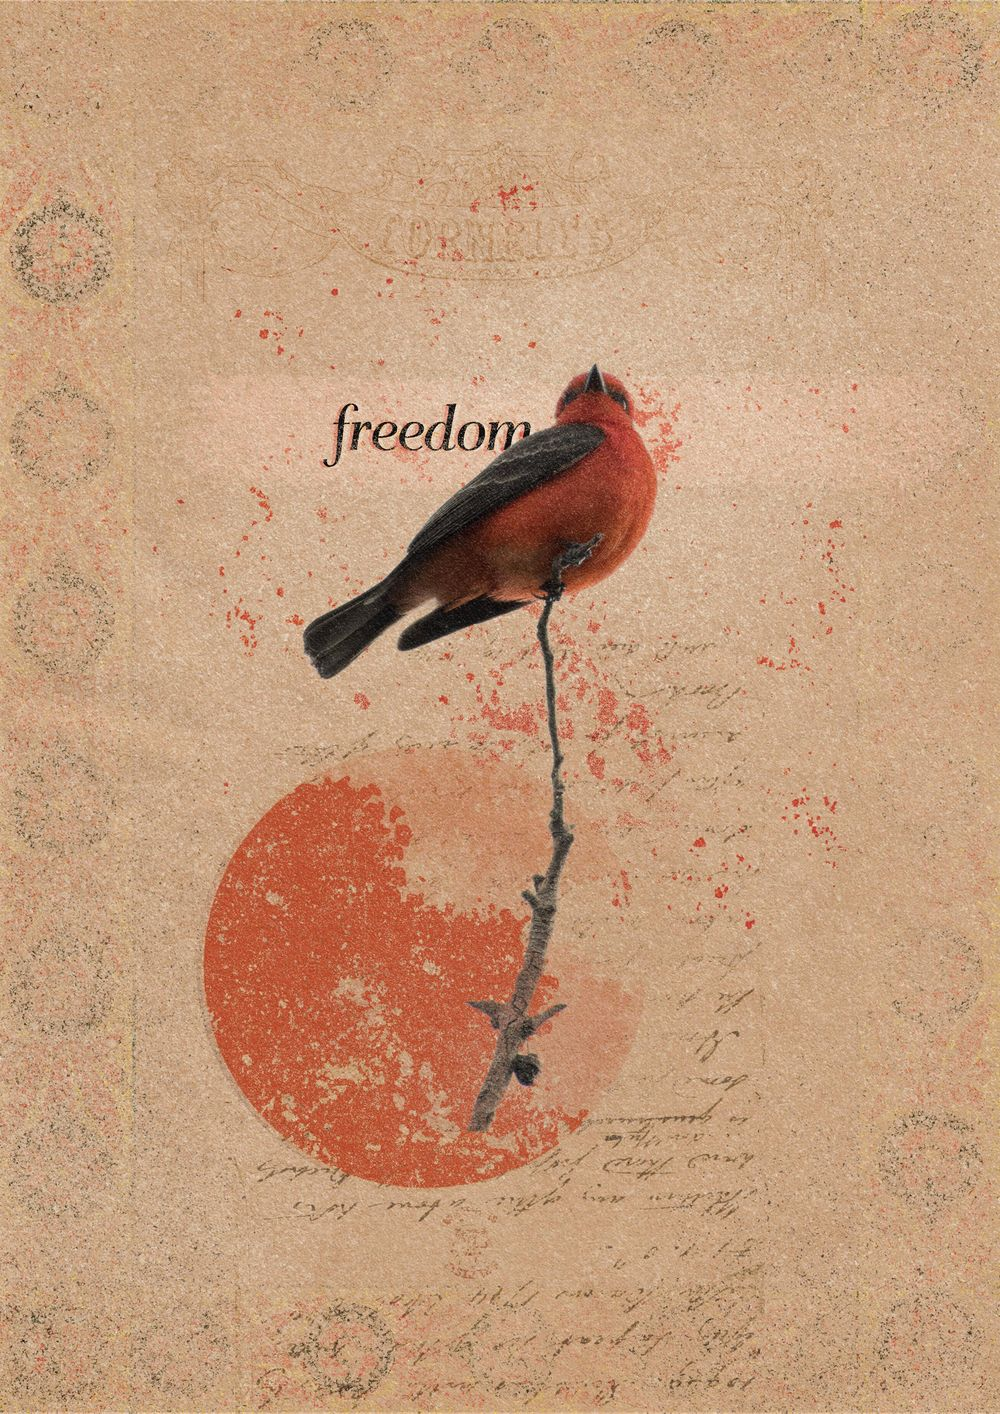 Retro Collage - Freedom - image 1 - student project